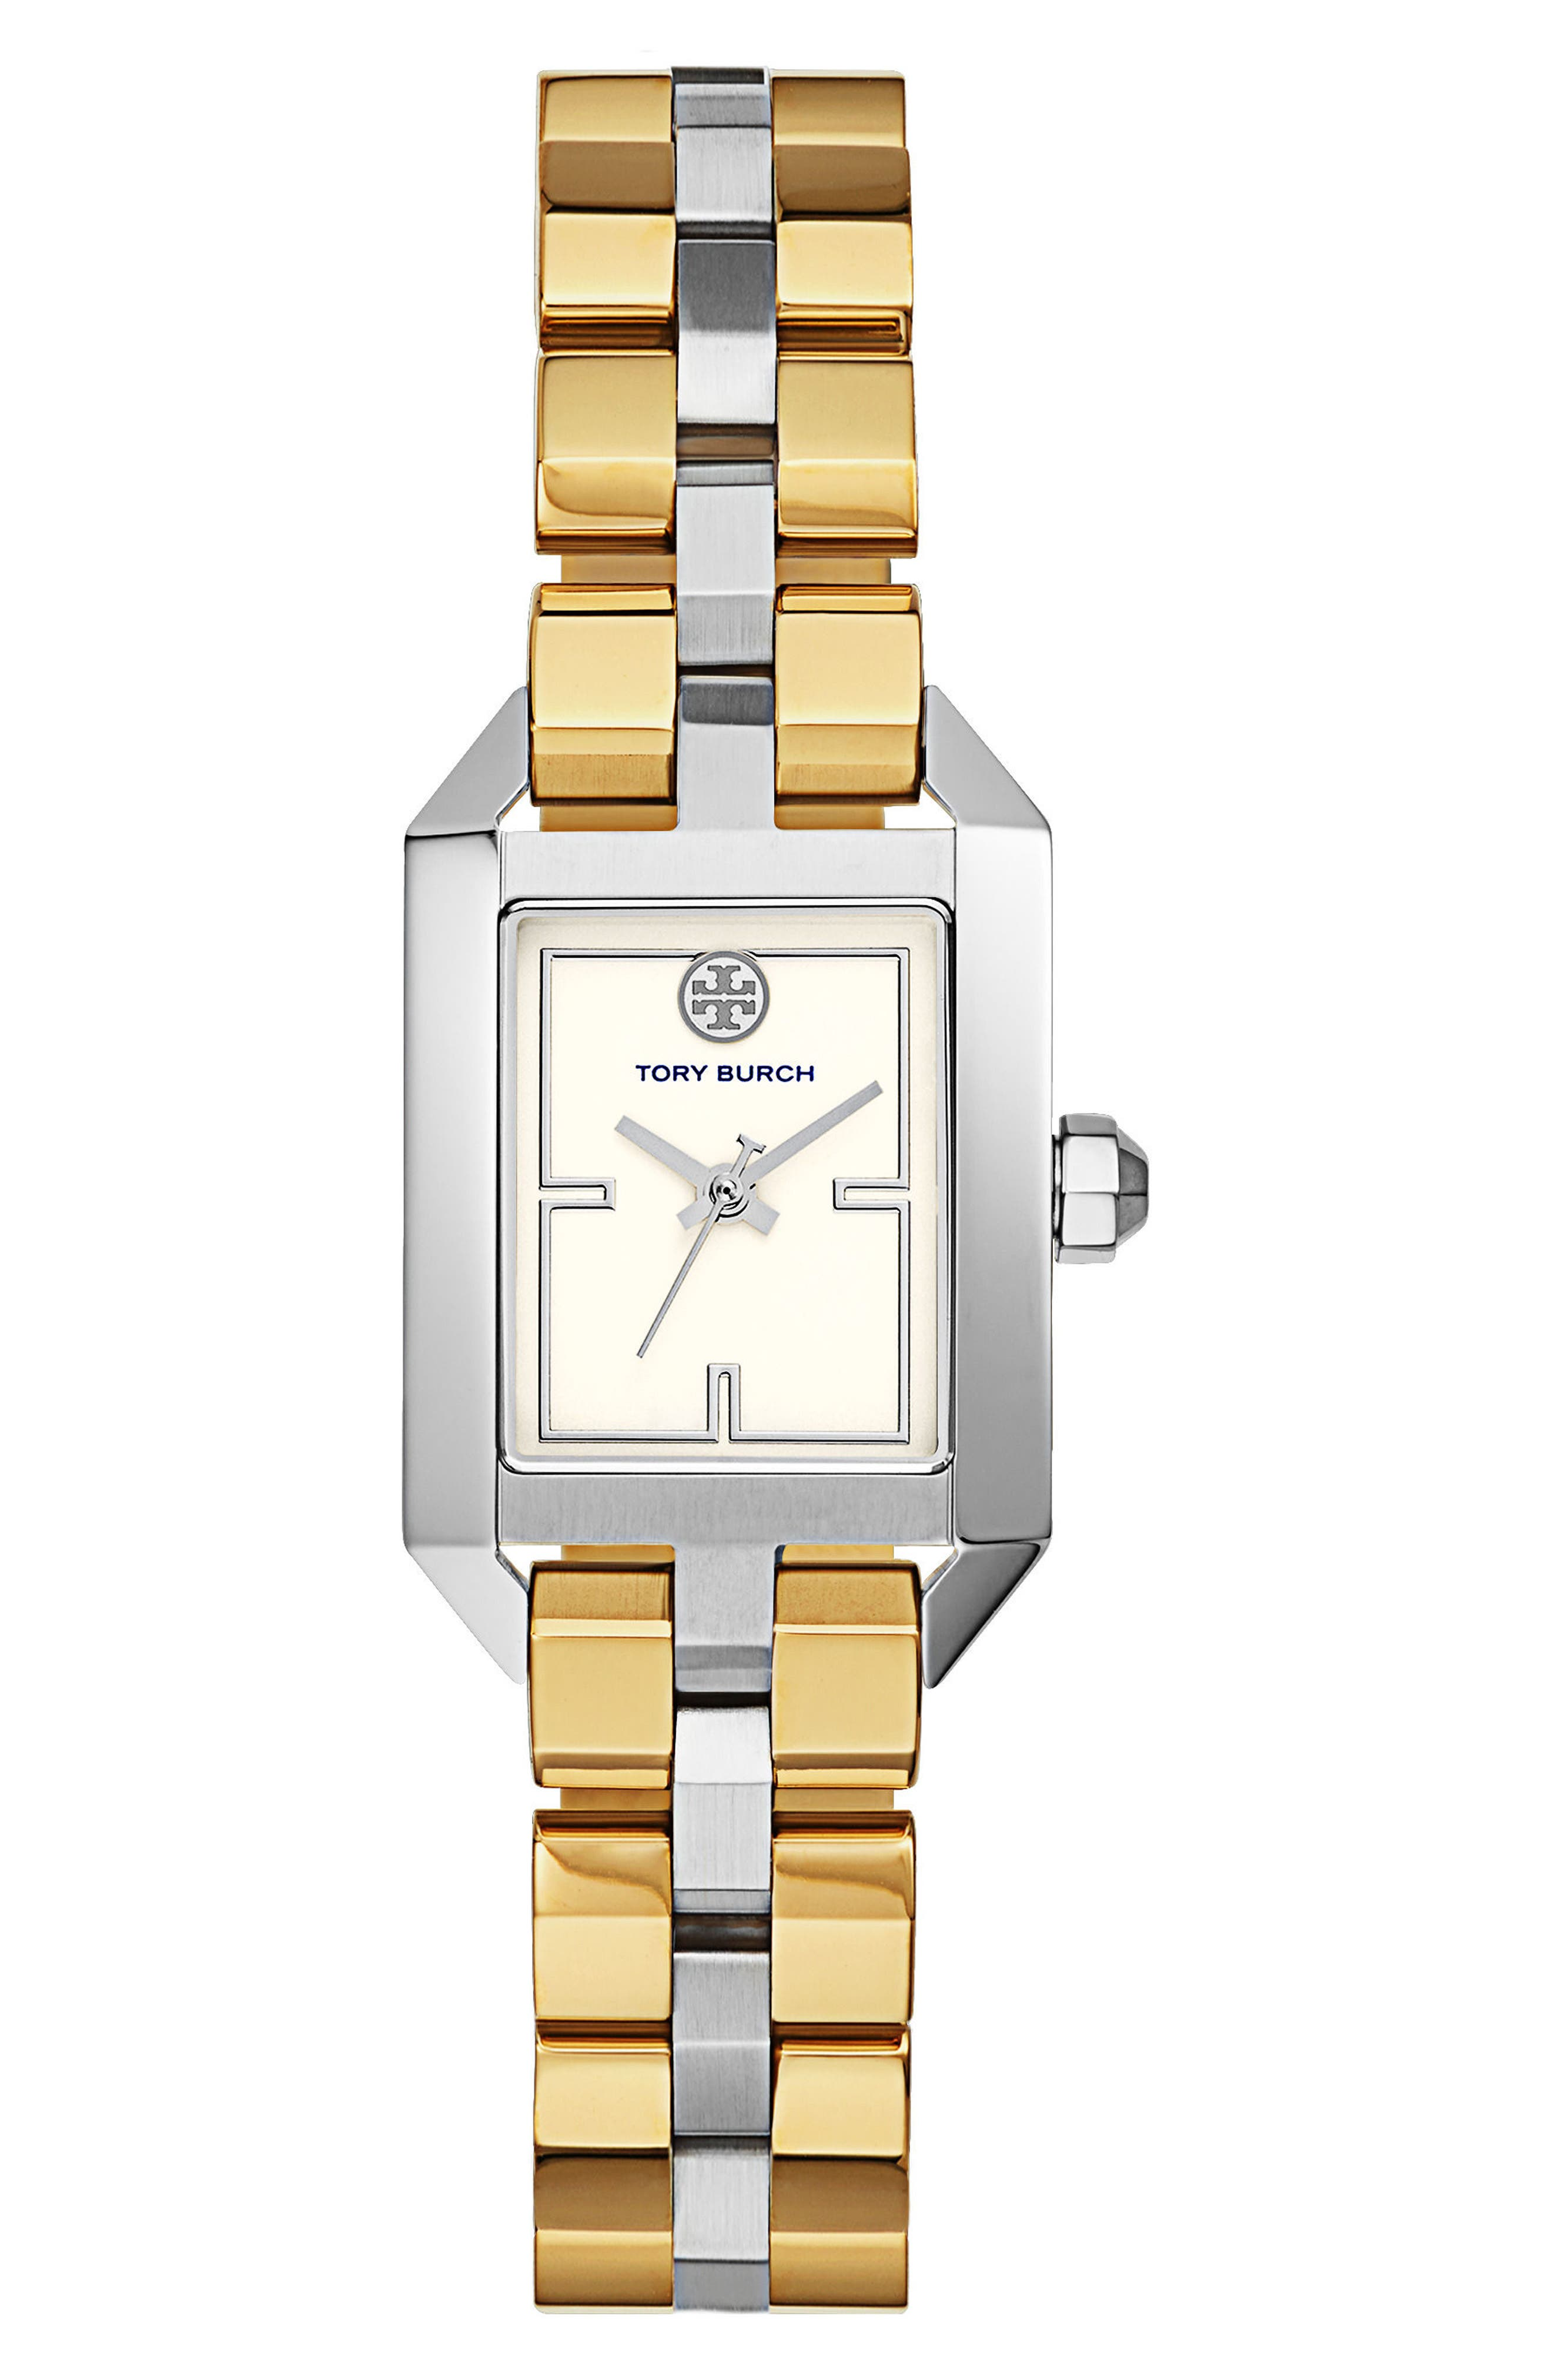 TORY BURCH Dalloway Bracelet Watch, 23mm x 36.5mm